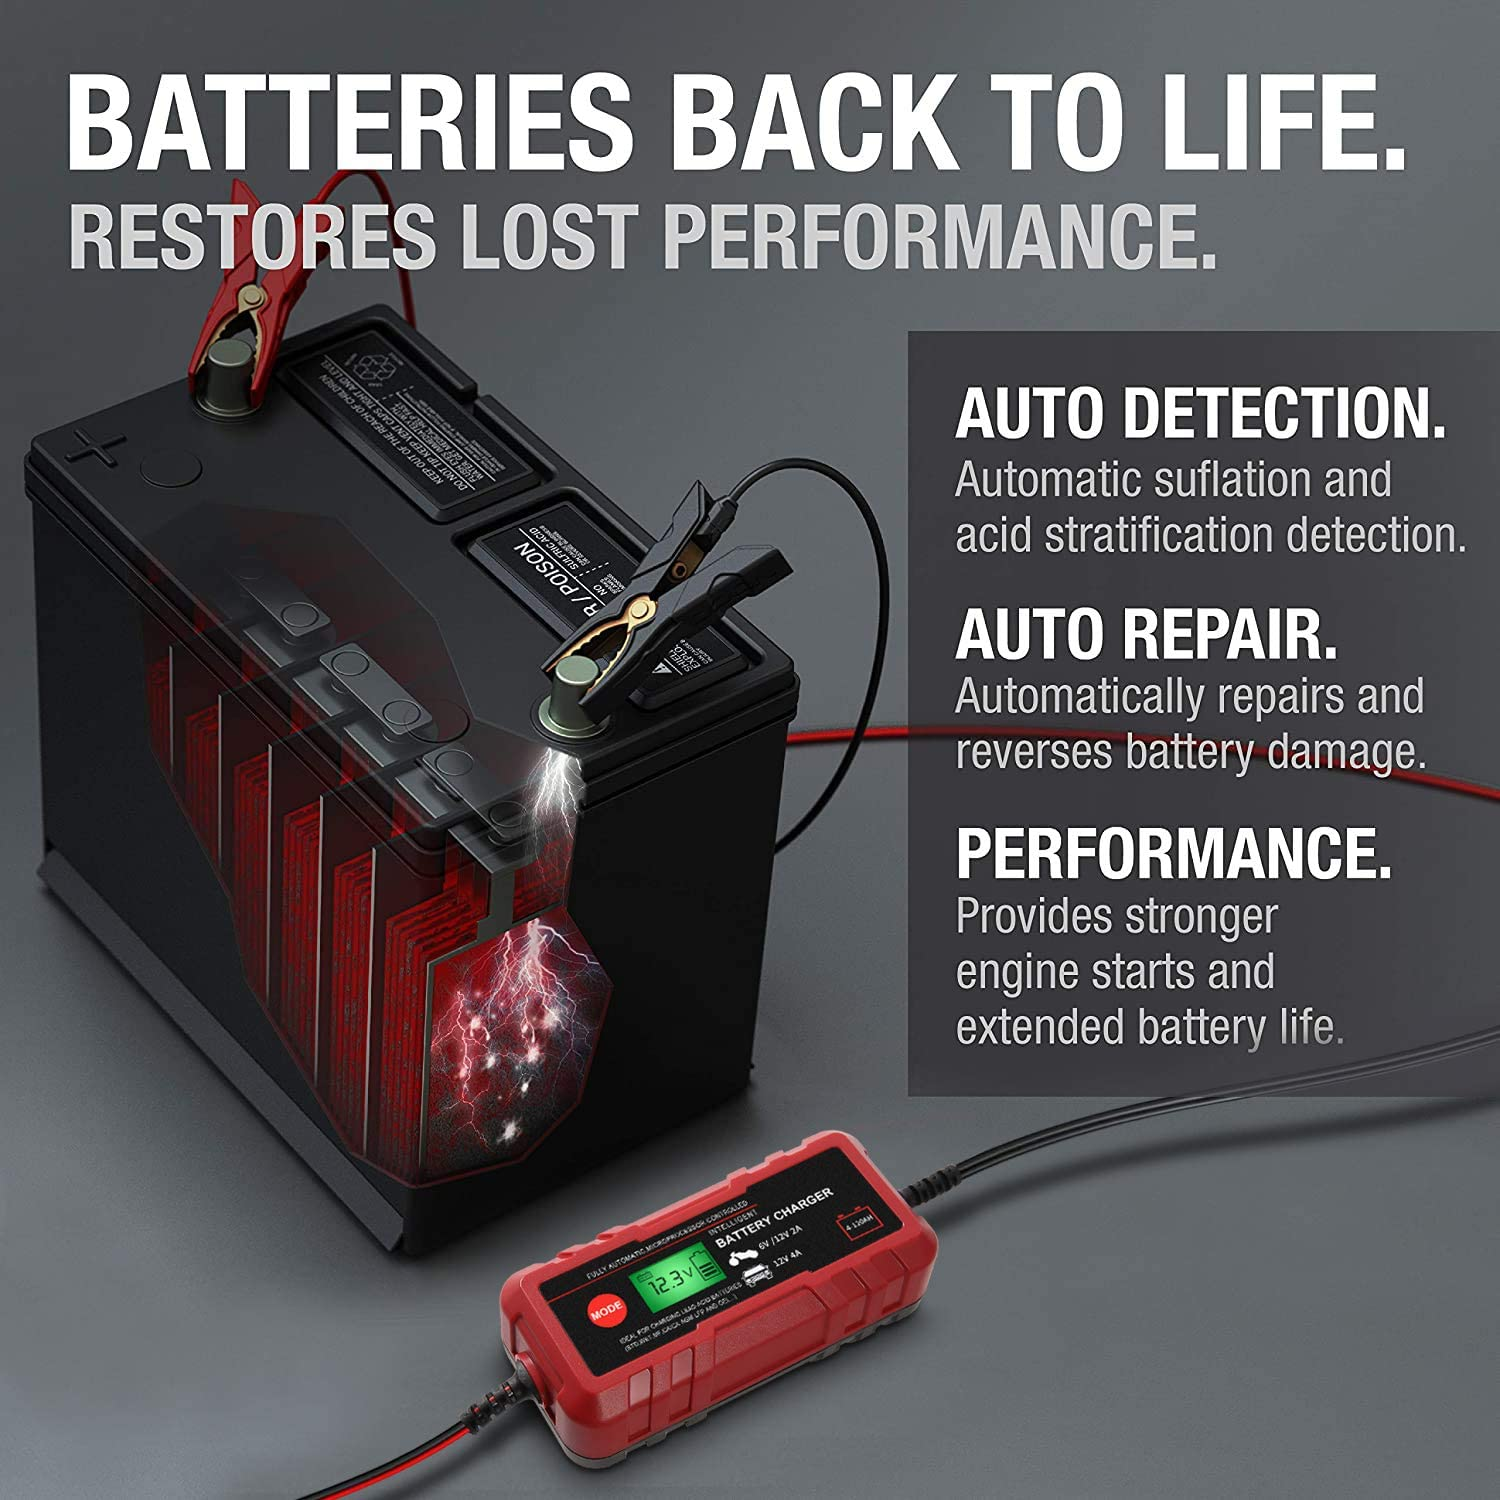 Rescue and Recover Batteries Smart Battery Charger Portable Battery Maintainer 8-Stages Trickle Charger Fast Charging for Car Boat Lawn Mower Marine Sealed 6V//12V Automotive Battery Charger